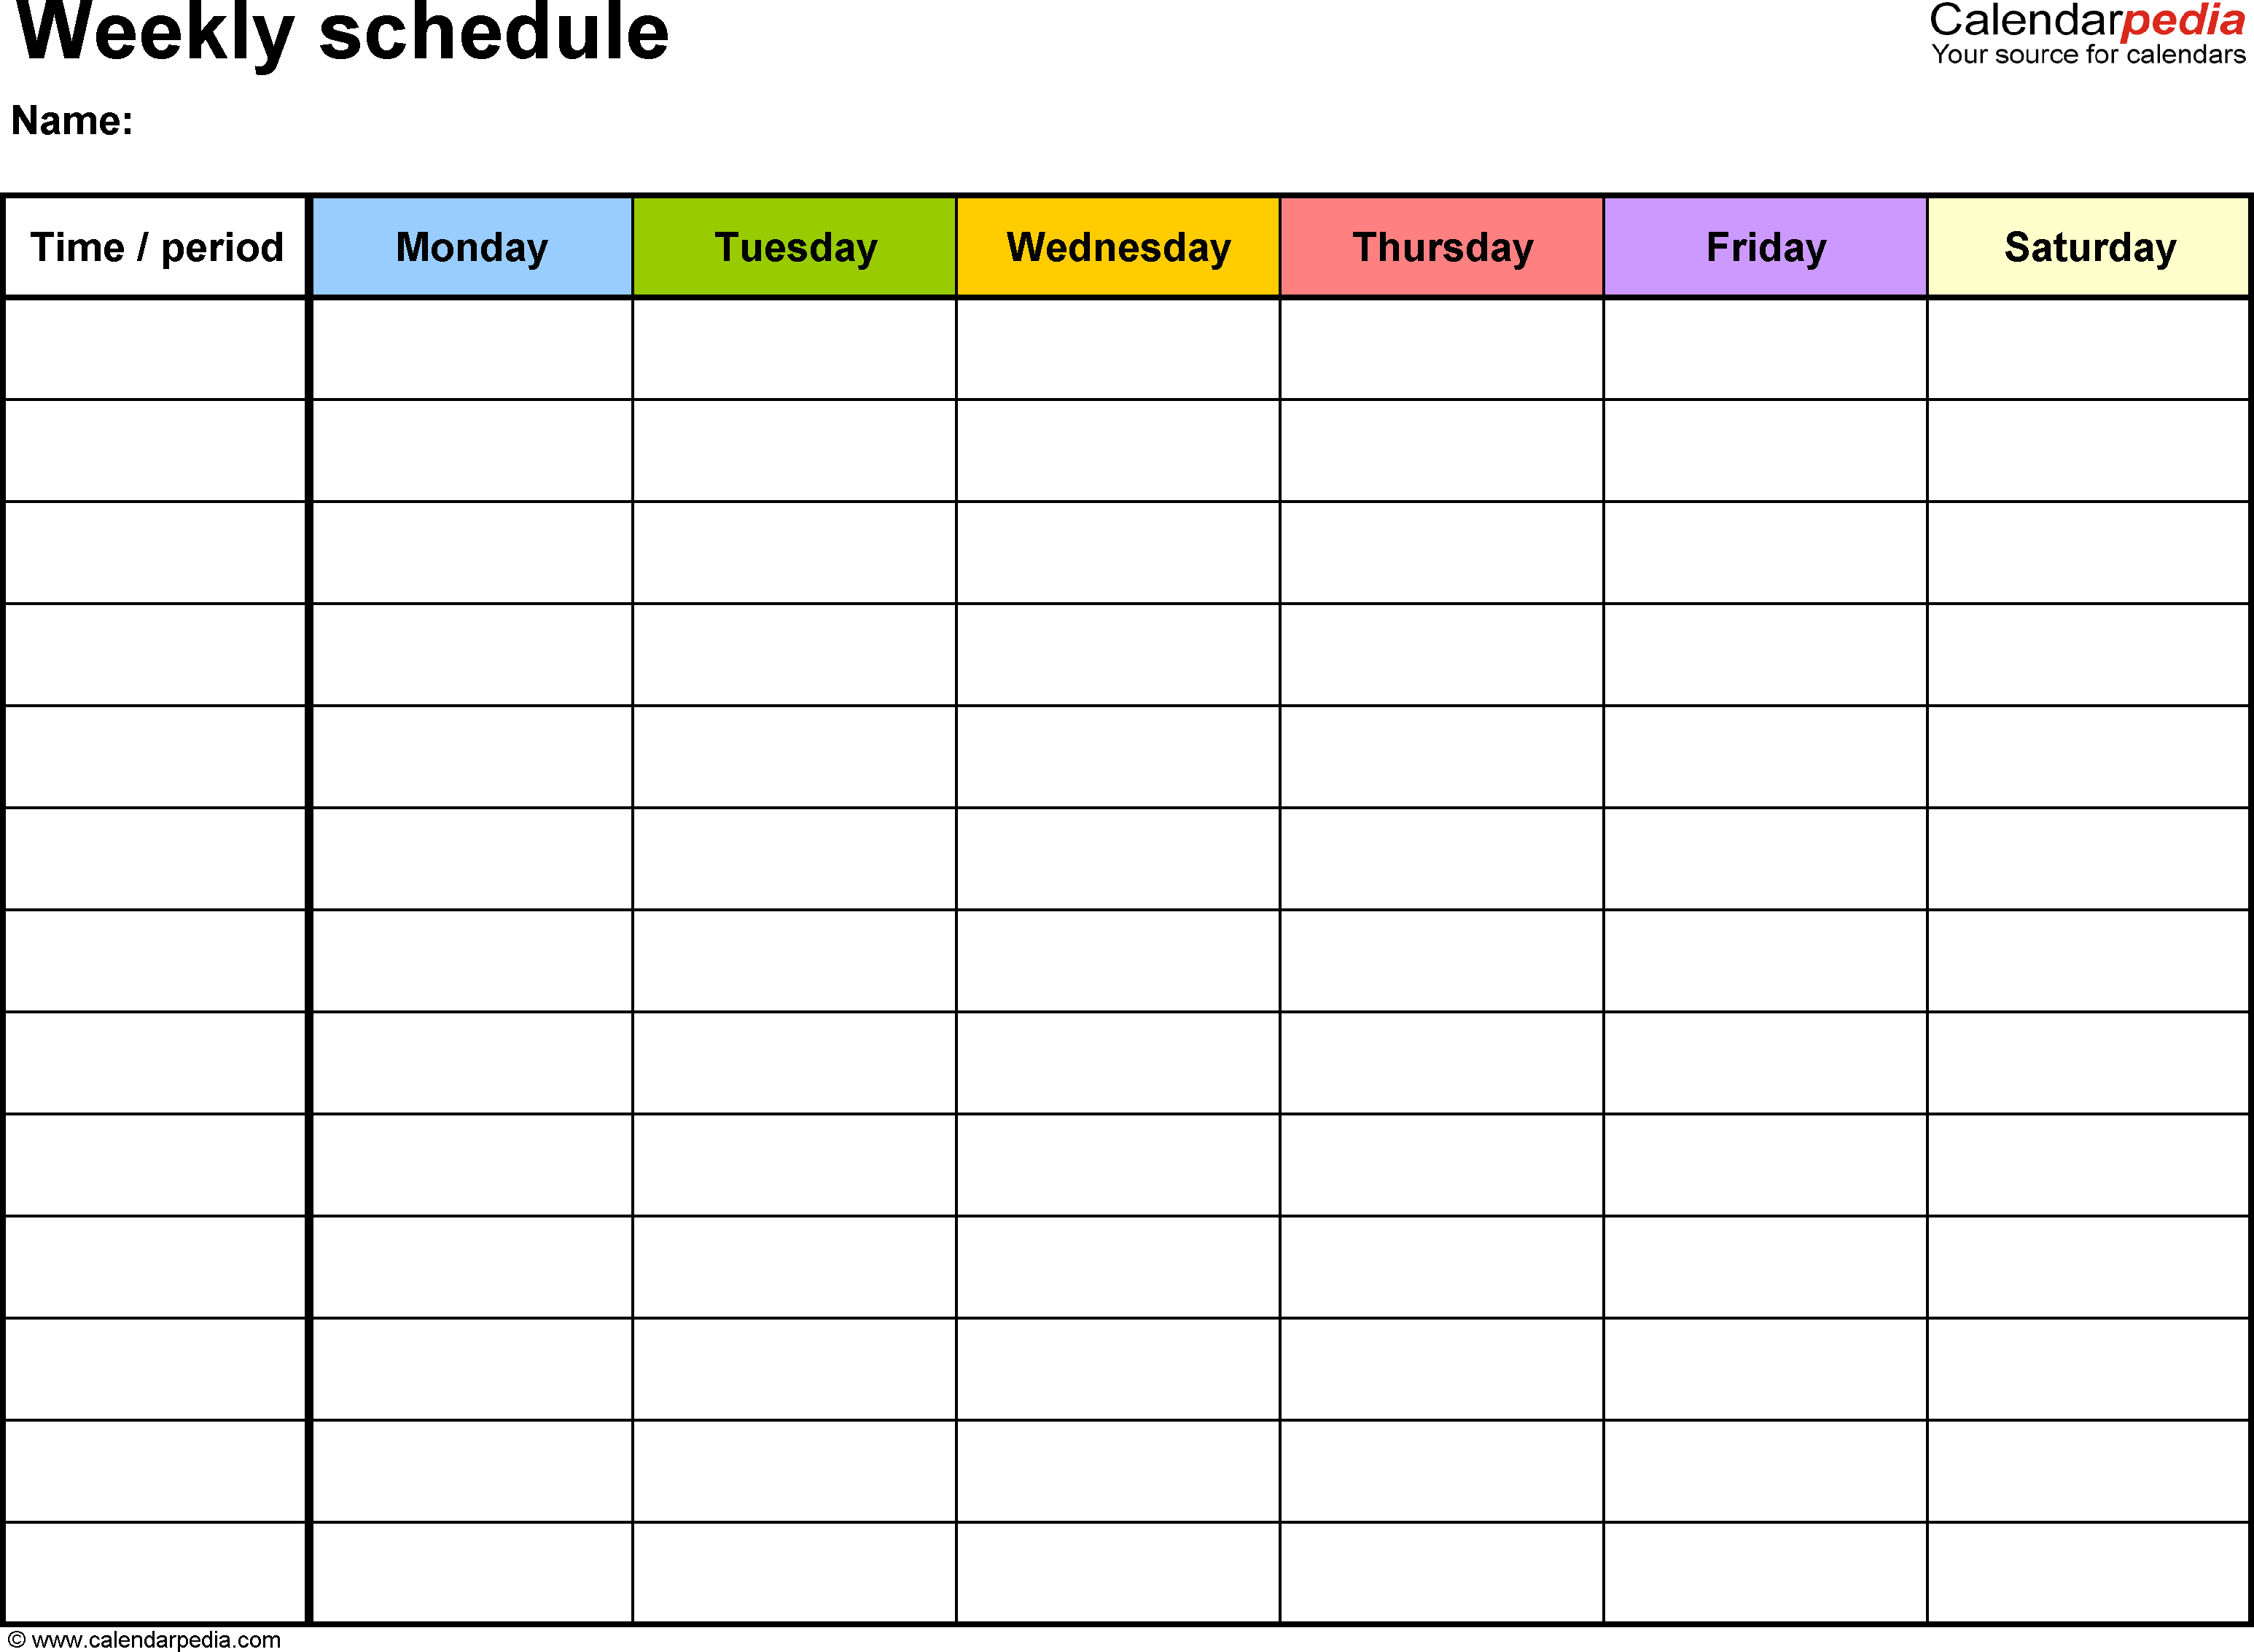 Print Free Weekly Calendar  Topa.mastersathletics.co with 5 Day Weekly Calendar Template